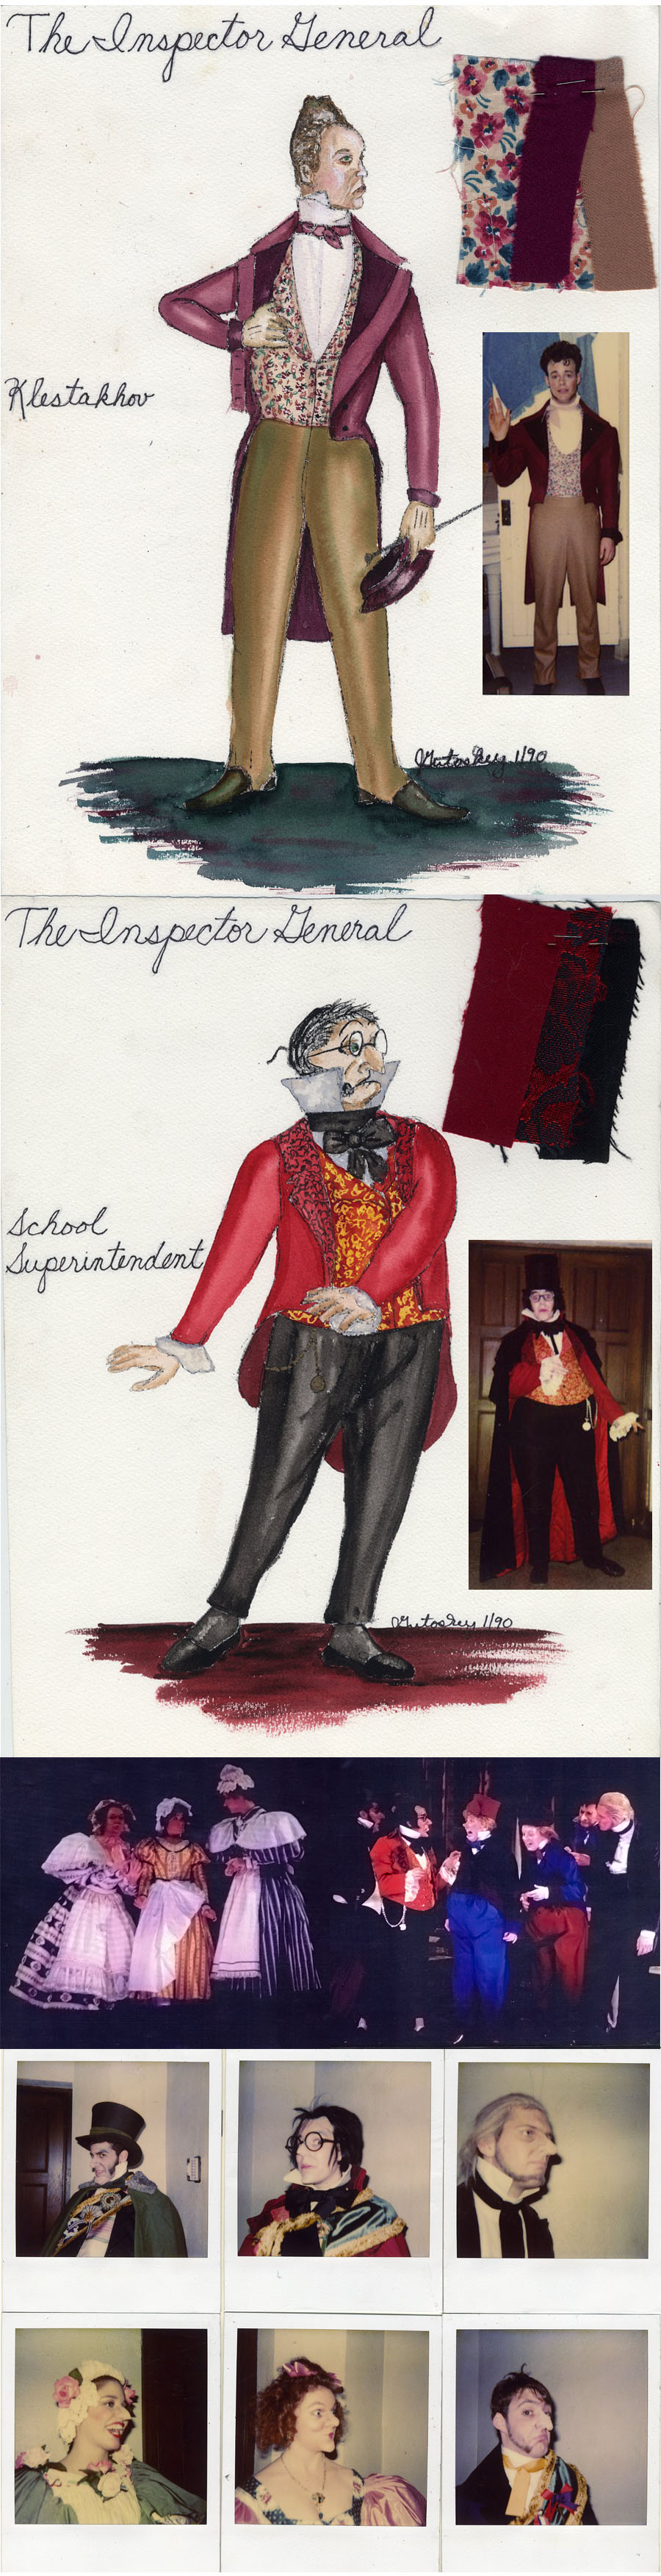 "My costume designs for ""The Inspector General\"" at University of Michigan\'s Mendelssohn Theater Ann Arbor, Michigan 1990. The Polaroids are of the prosthetic make-up I designed for each character."